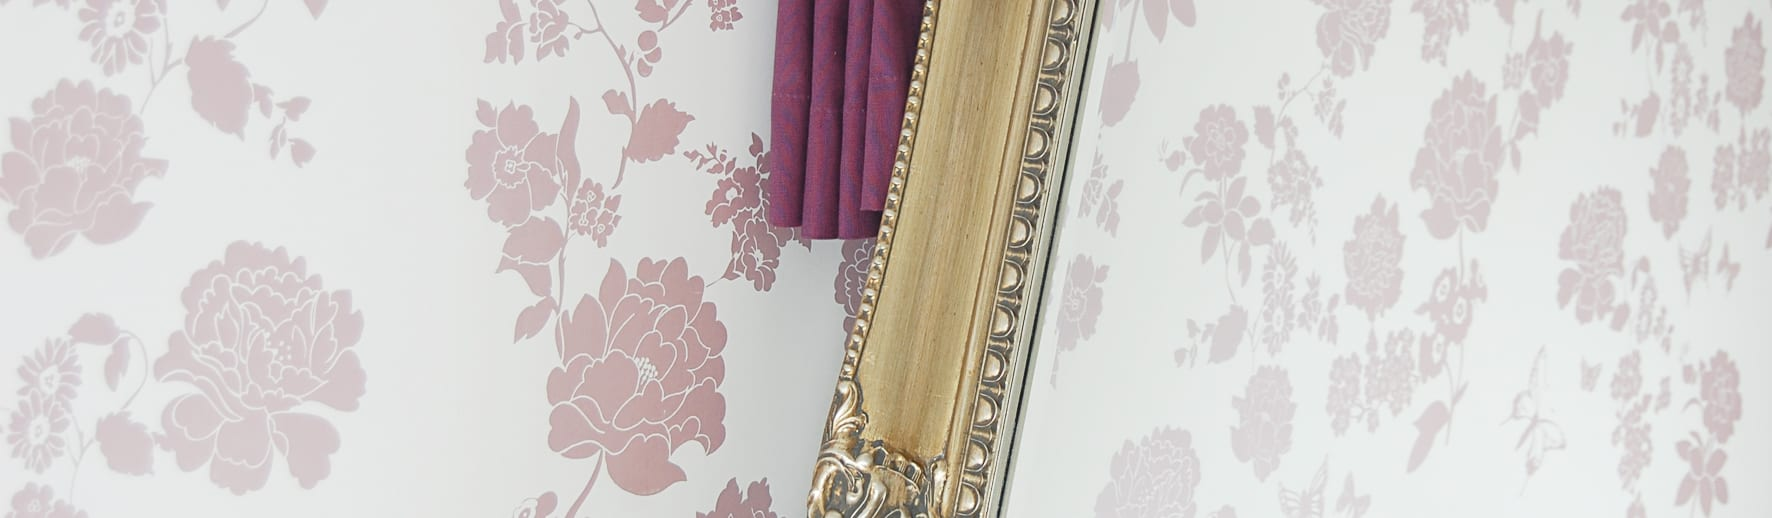 Felicity Design felicity design paint wall coverings in homify